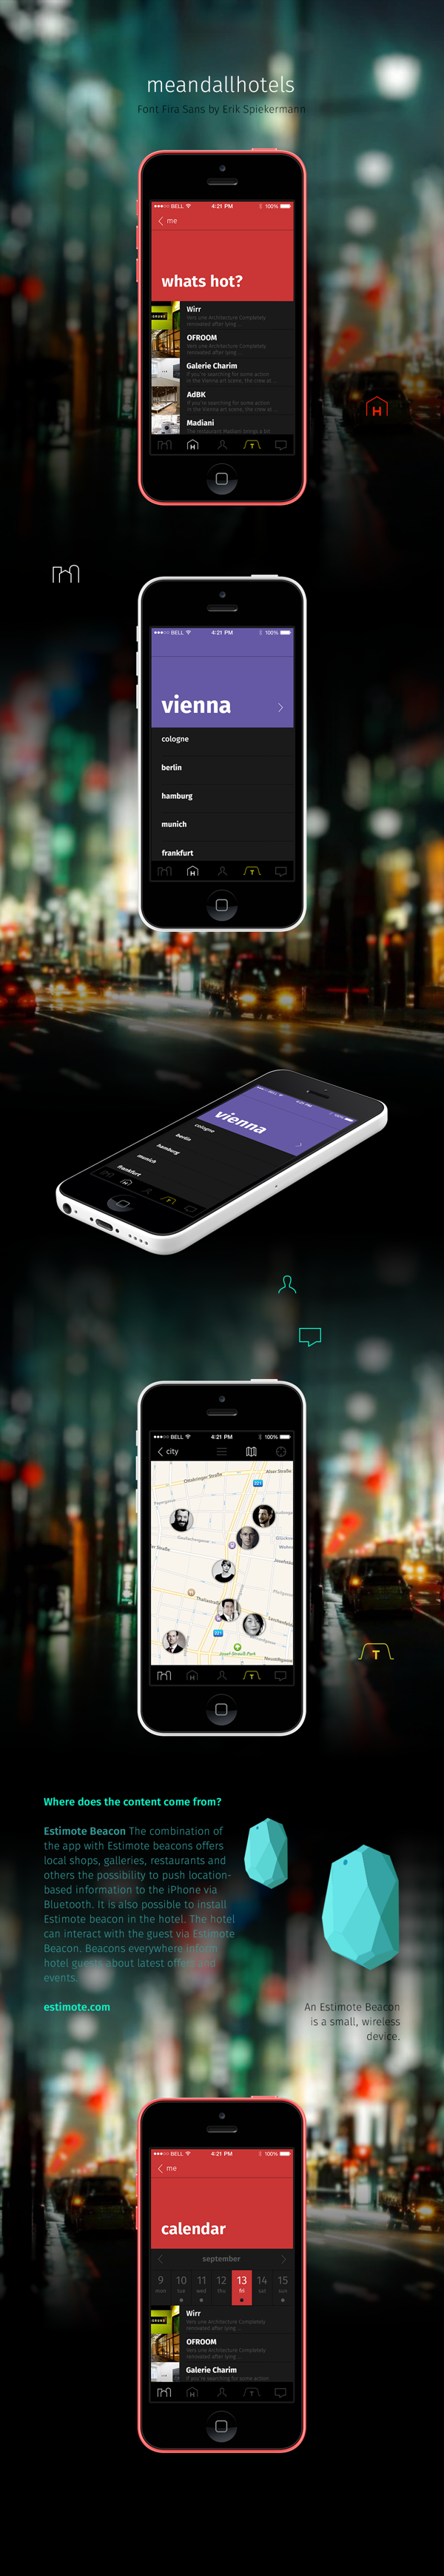 meandallhotels app 2.0 on